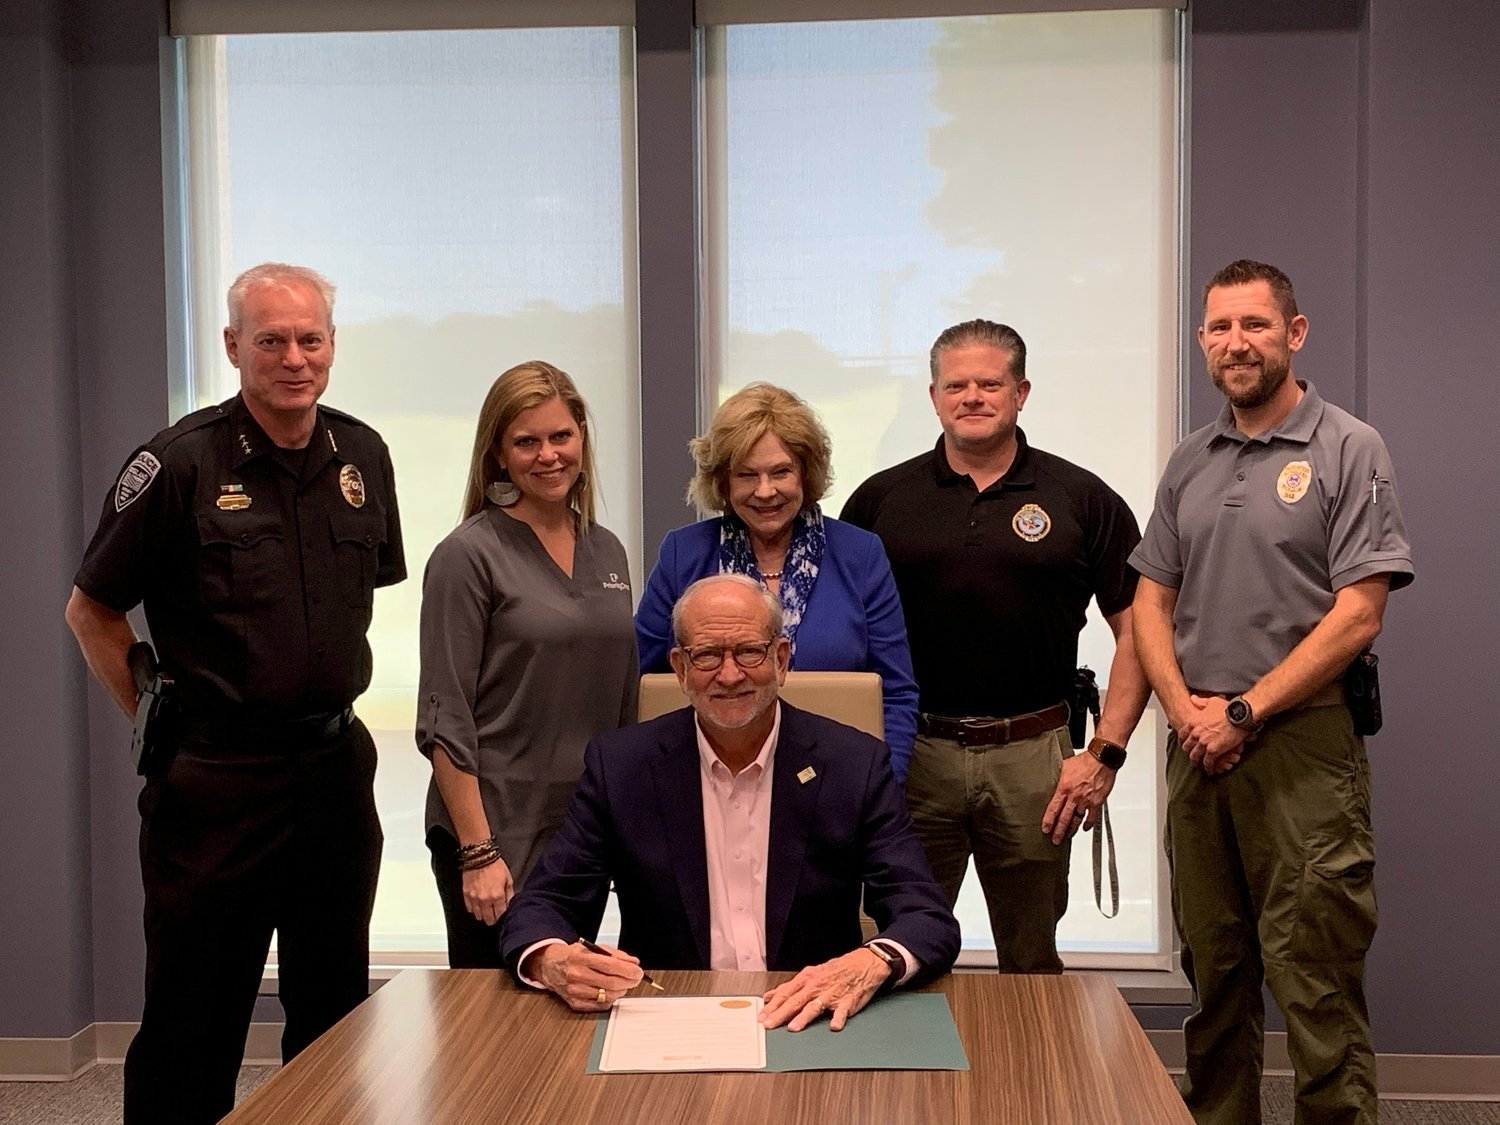 Ridgeland Mayor Gene McGee signs a proclamation designating May 9 – 14, 2021, National Law Enforcement Appreciation Week. The Ridgeland Chamber of Commerce will host several events to honor Ridgeland's 65 sworn officers. From left, Ridgeland Chief of Police John Neal; Kristy Daniels, PriorityOne Bank and Ridgeland Police Appreciation Week chair; Linda Bynum, Ridgeland Chamber Executive Director; Brian Myers, Lieutenant of Patrol and Eddie Addison, Lieutenant of Criminal Investigations.